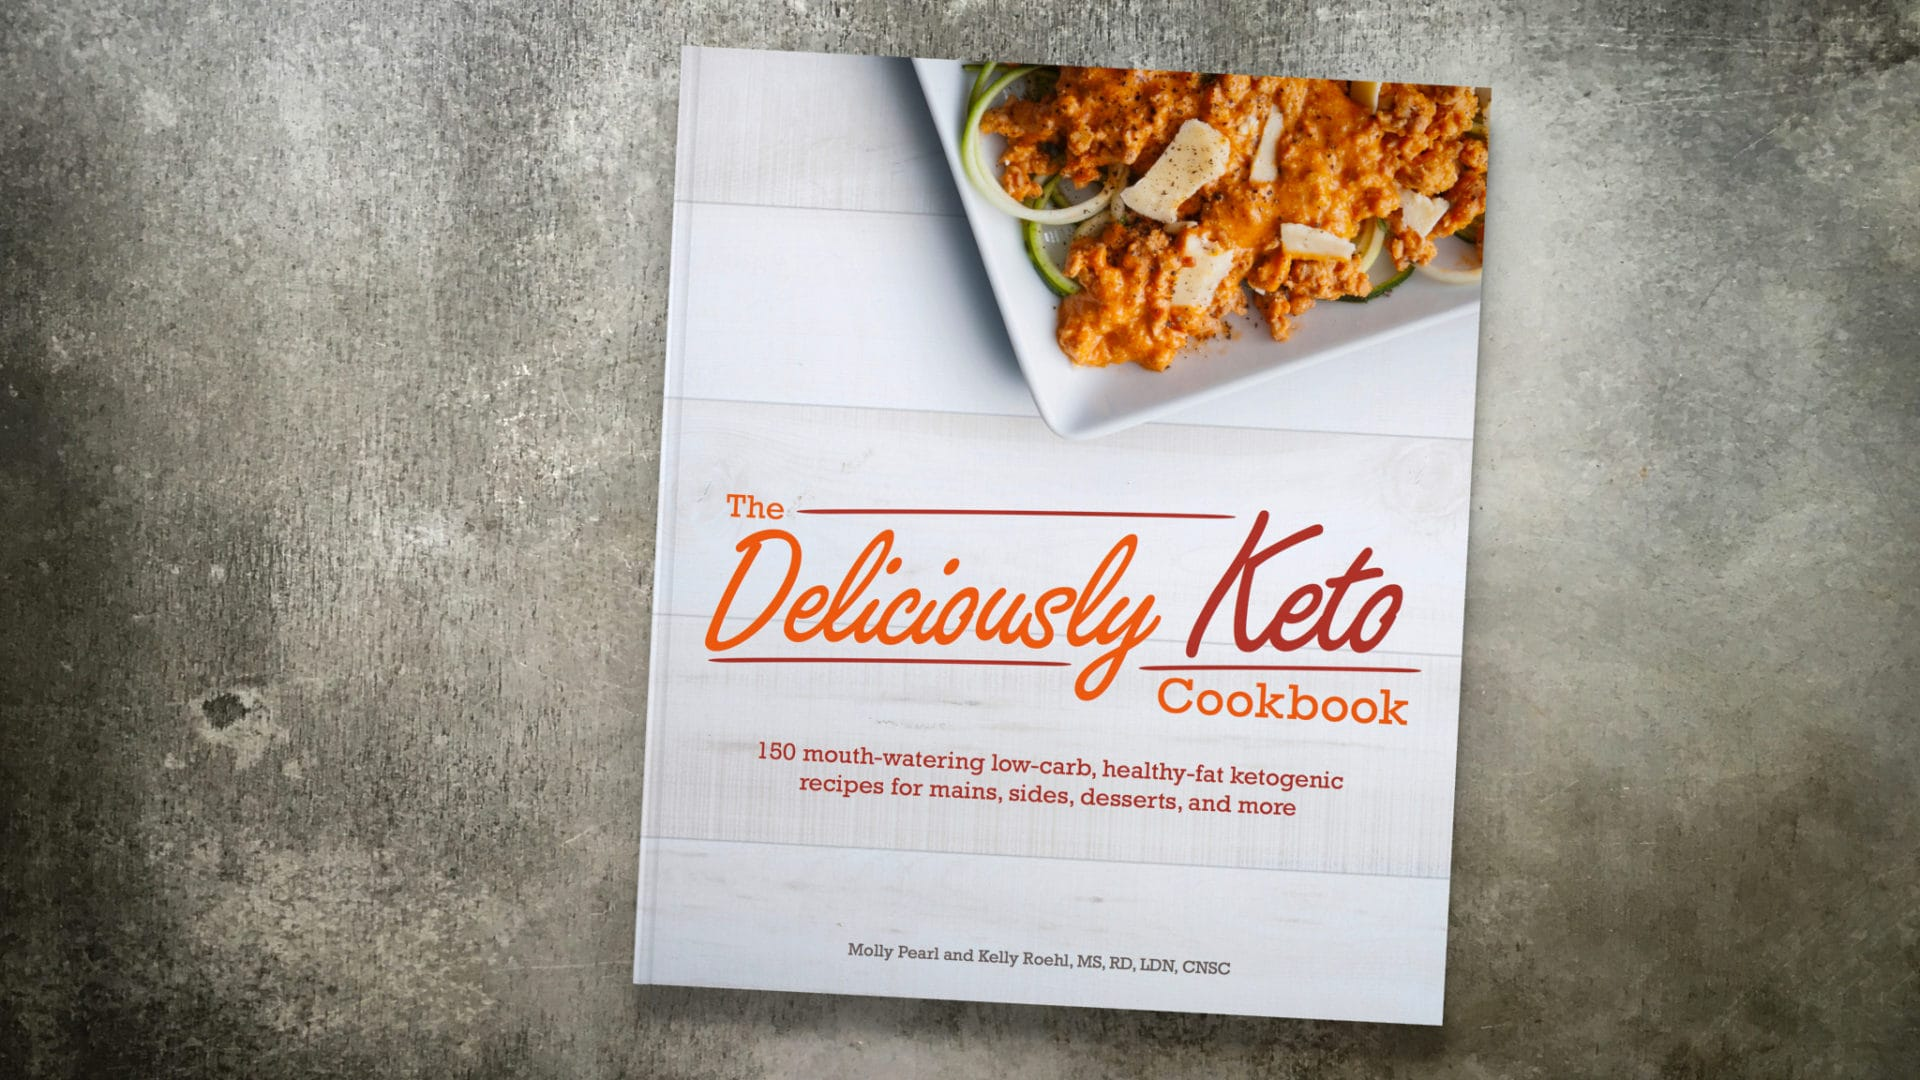 The Deliciously Keto Cookbook